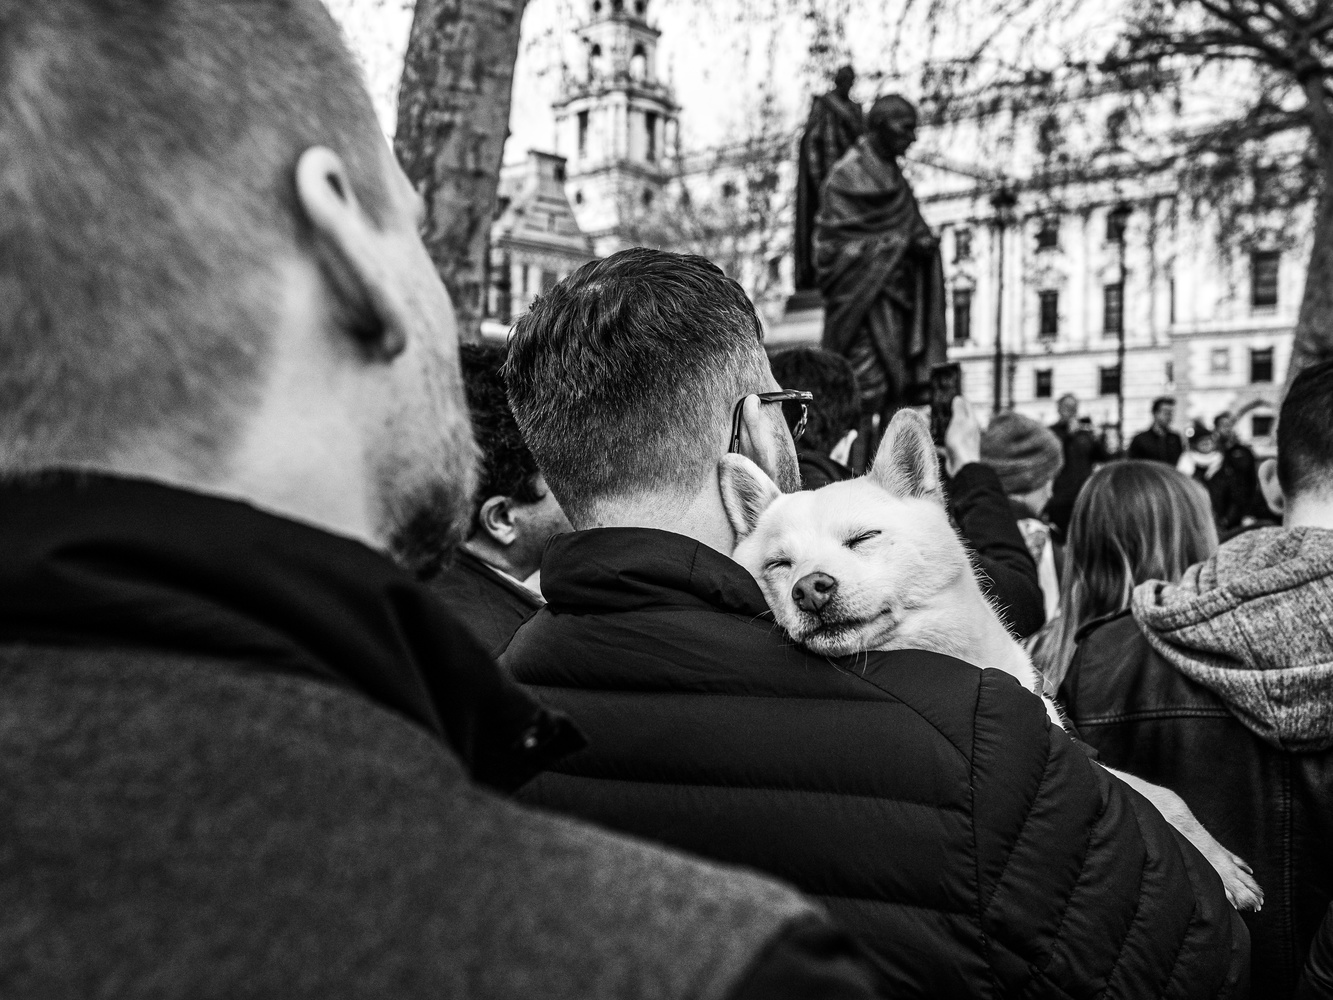 In the crowd by tomas doe